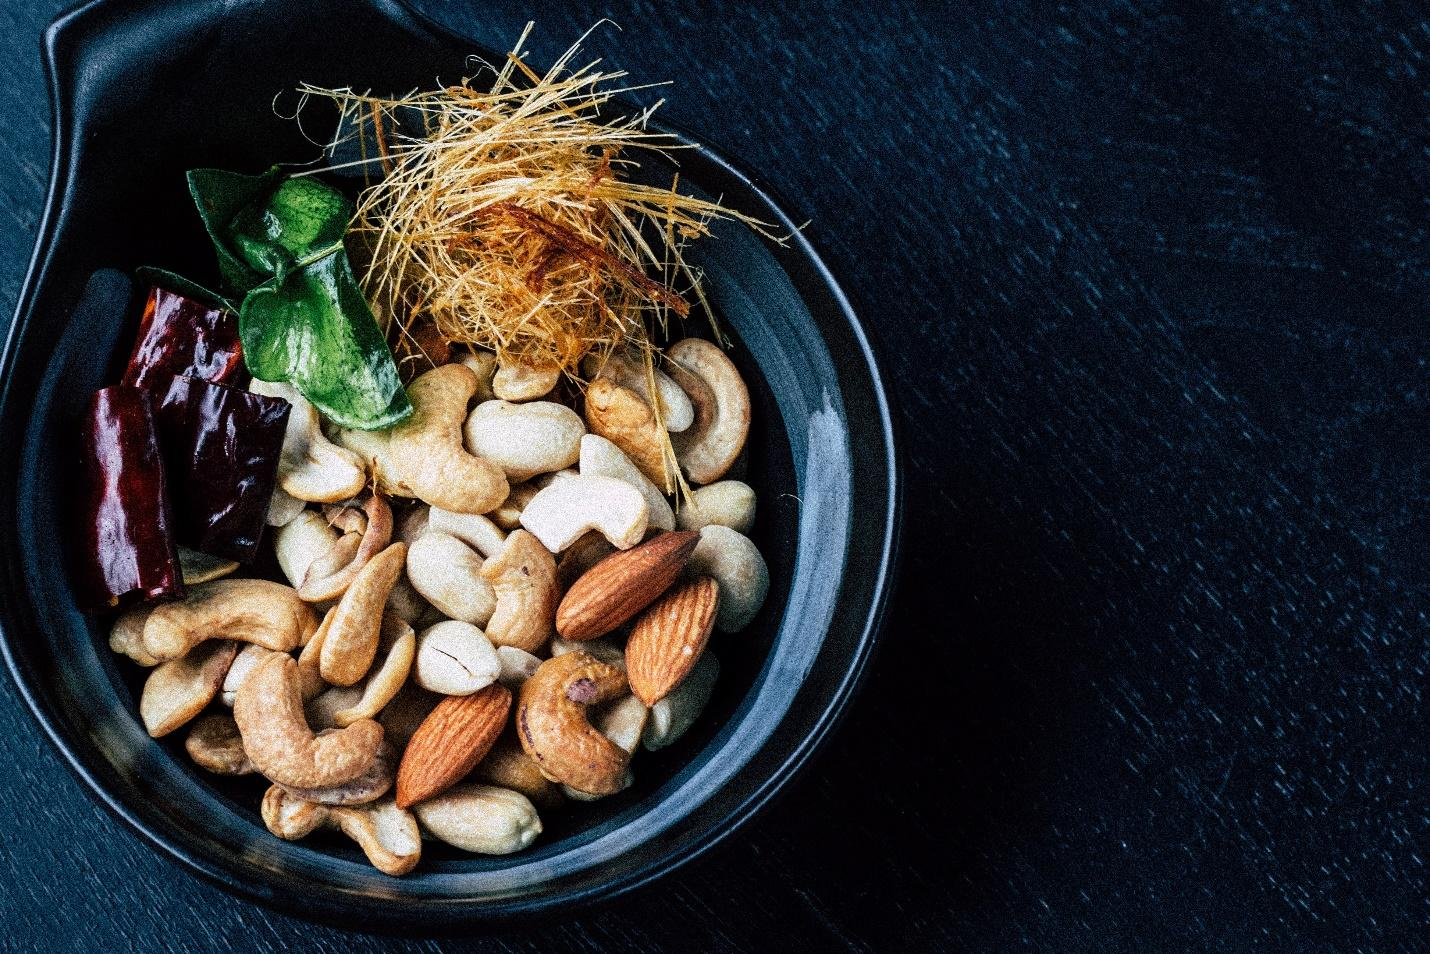 Low-carb nuts and seeds